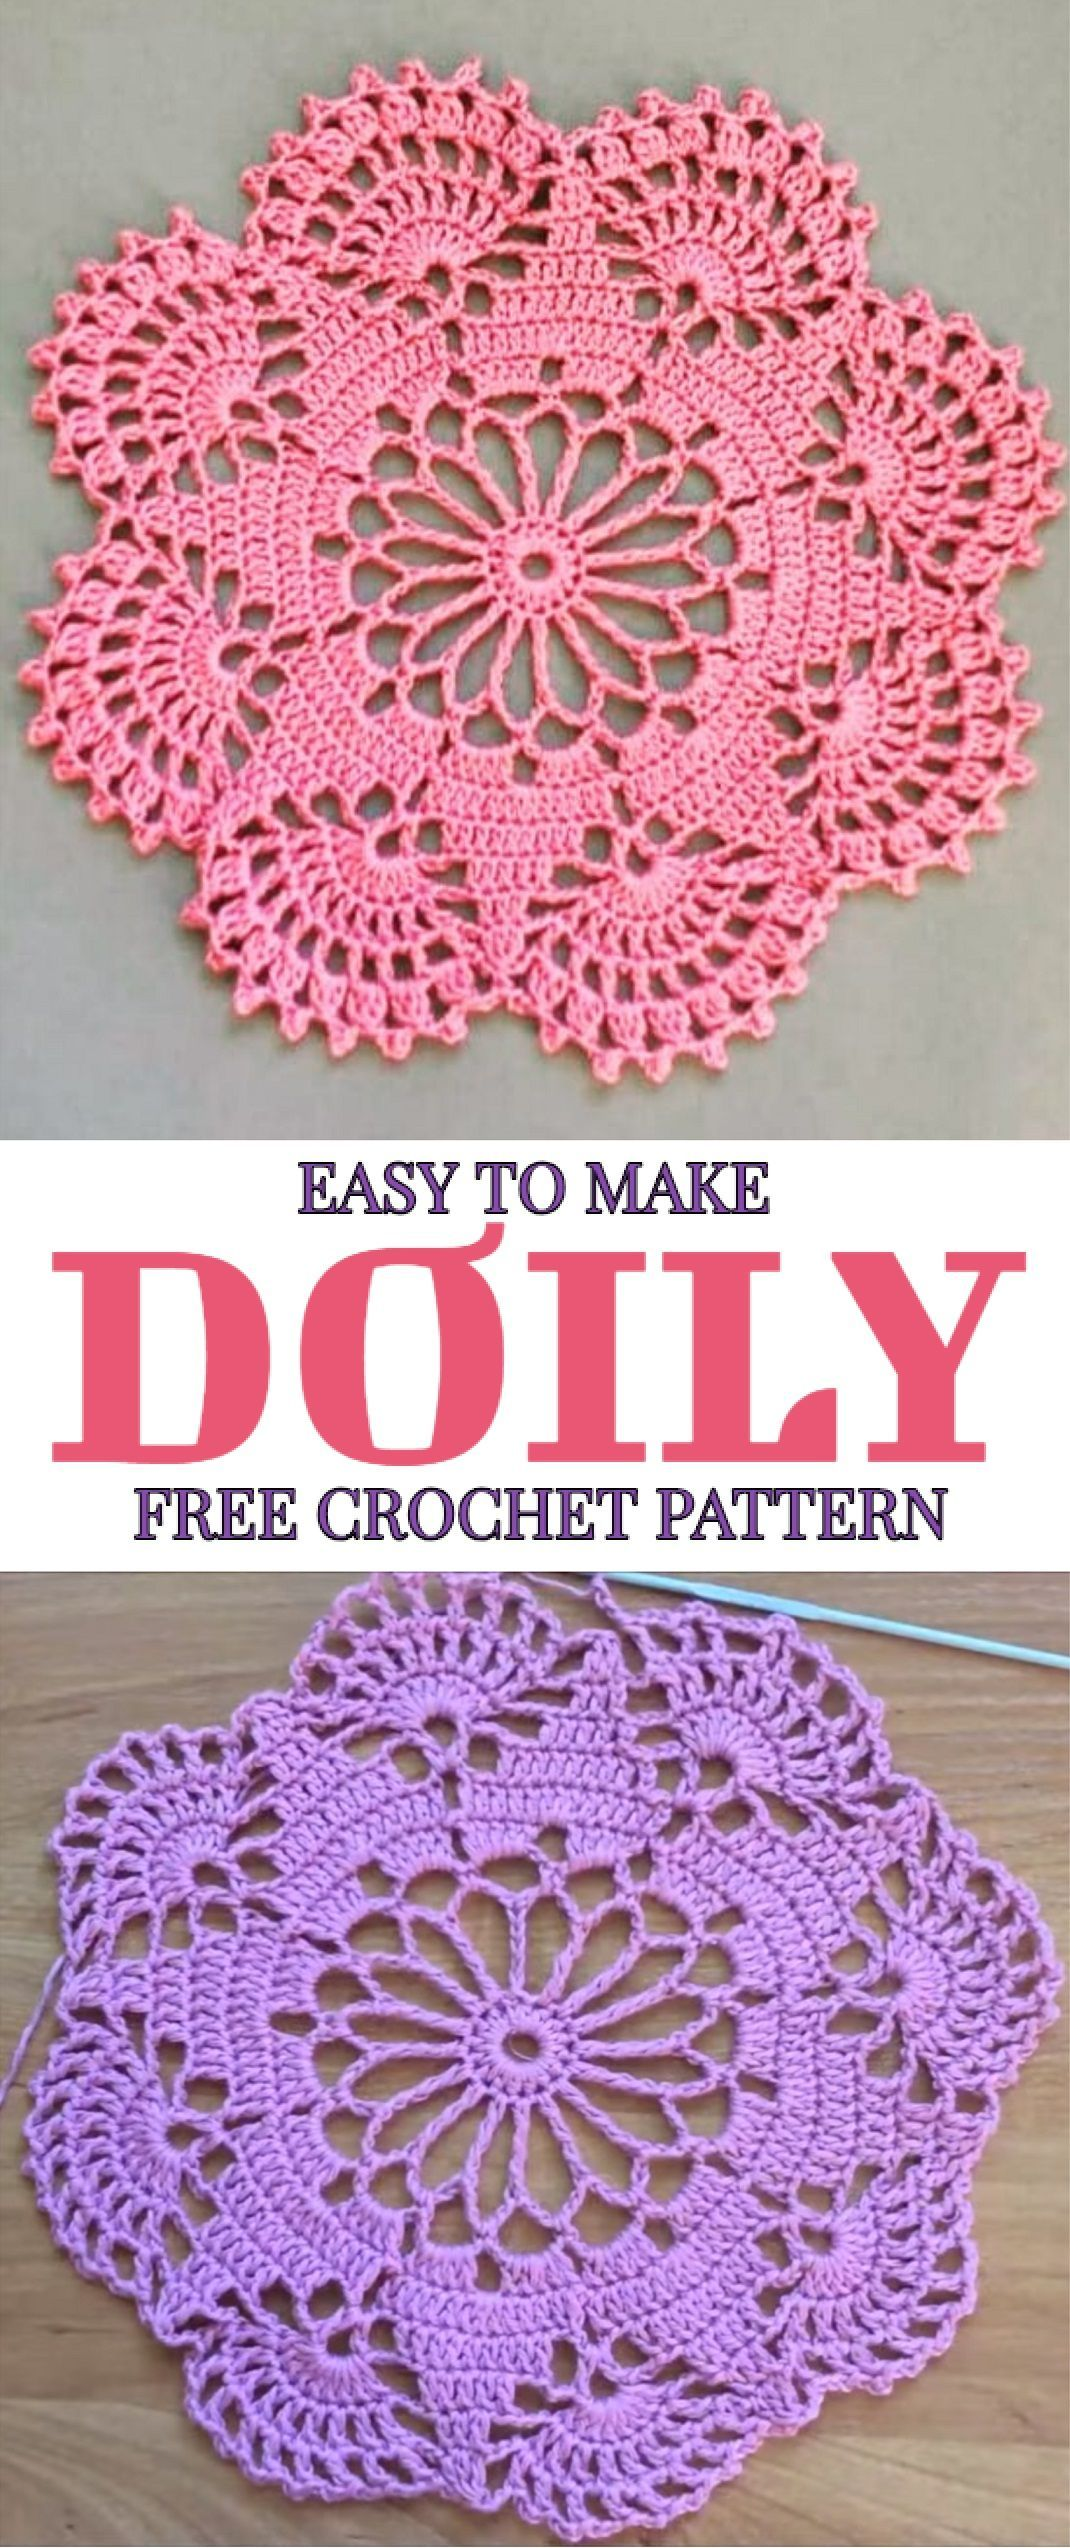 How to Easily Crochet Doily with Free Pattern #dollies